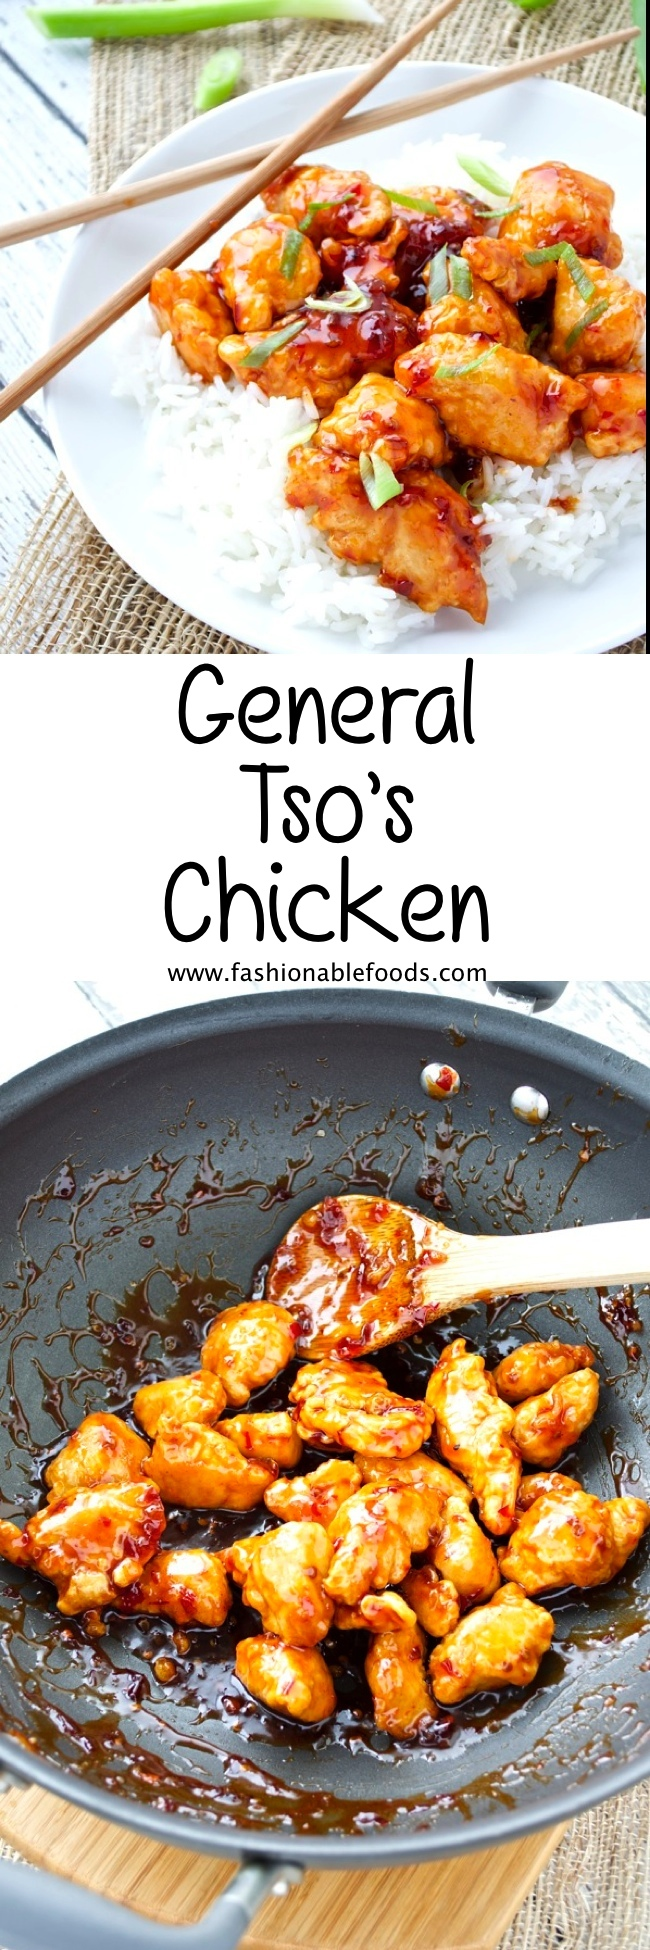 General Tso's Chicken Pin